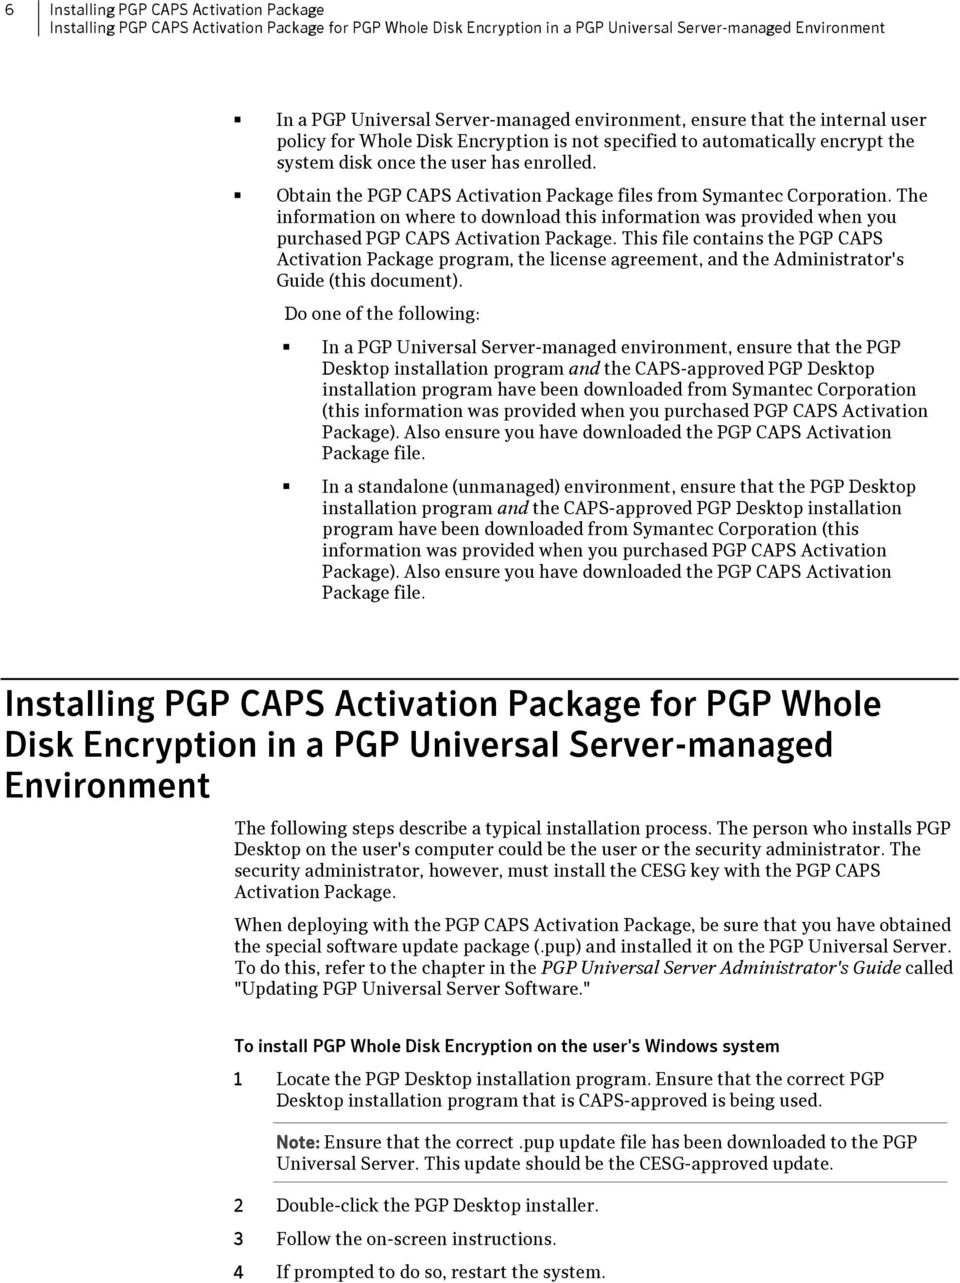 Obtain the PGP CAPS Activation Package files from Symantec Corporation. The information on where to download this information was provided when you purchased PGP CAPS Activation Package.